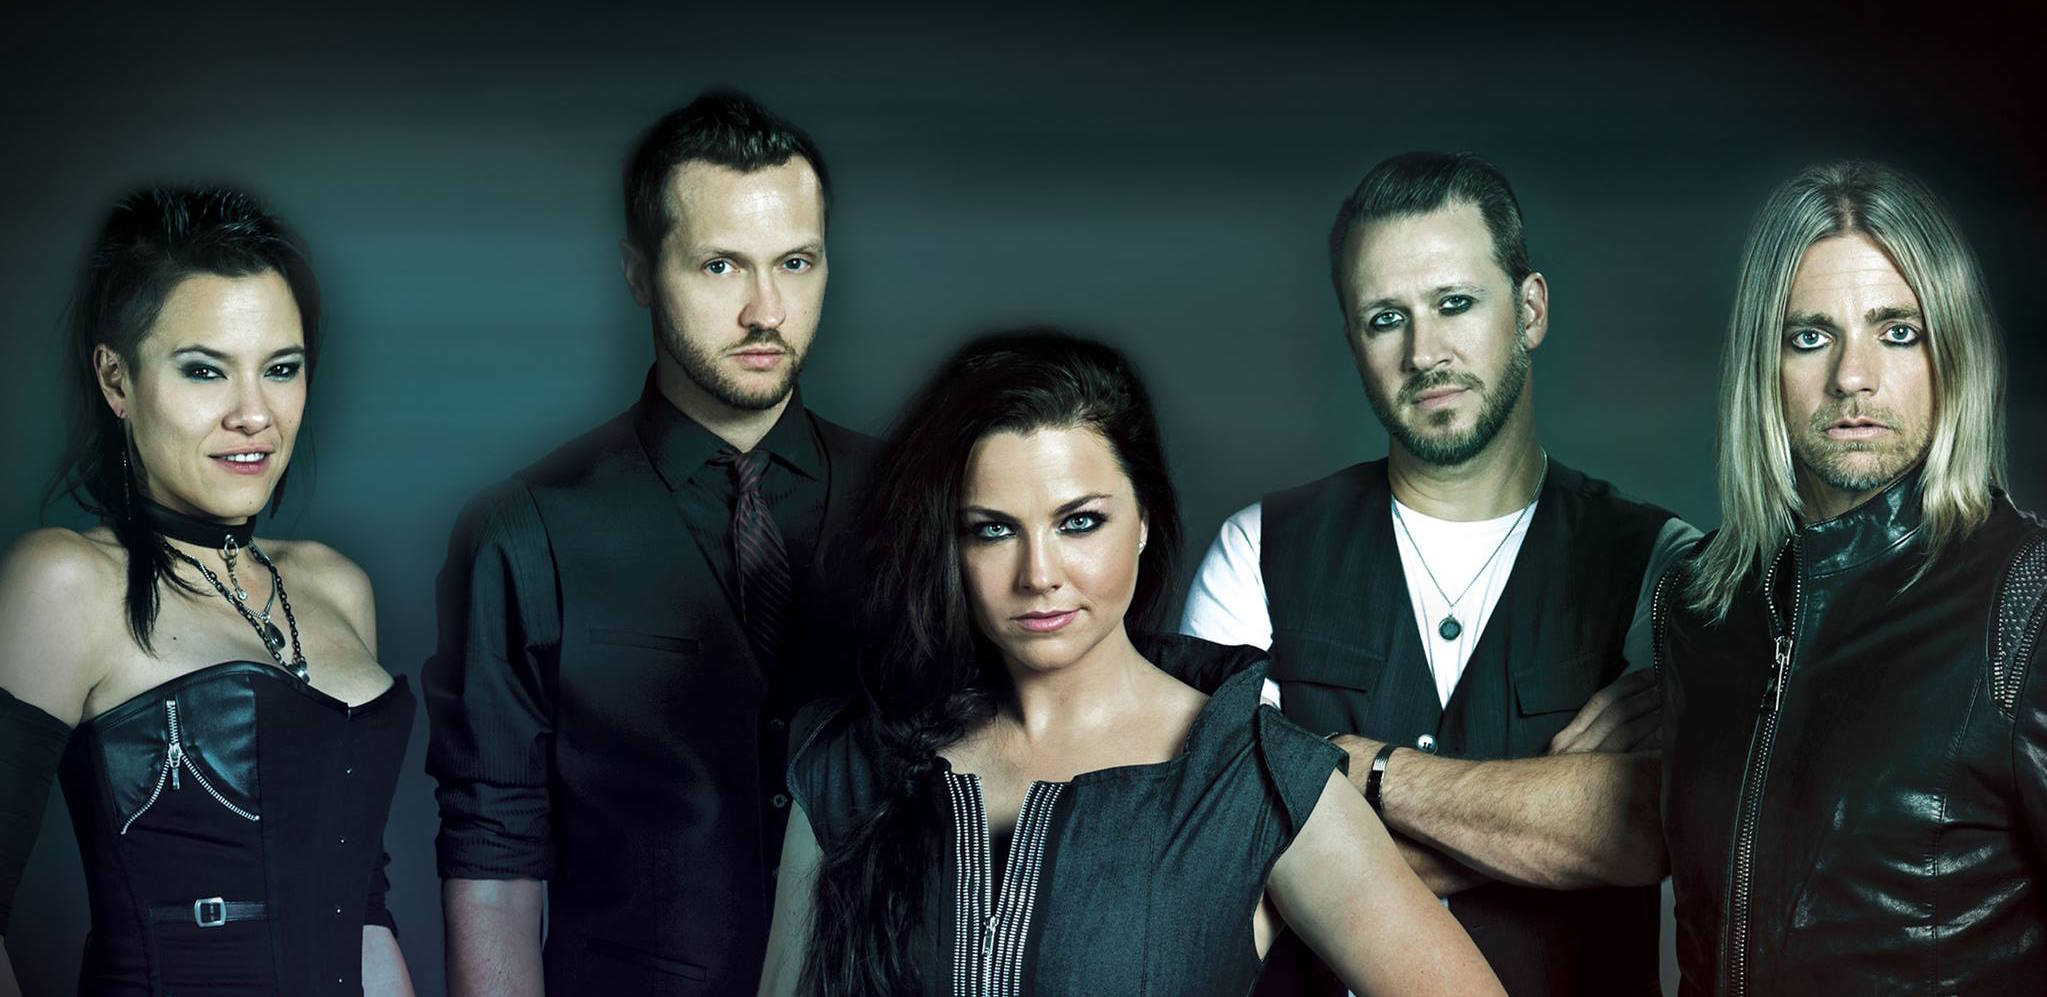 Evanescence + Within Temptation concert in Bruxelles